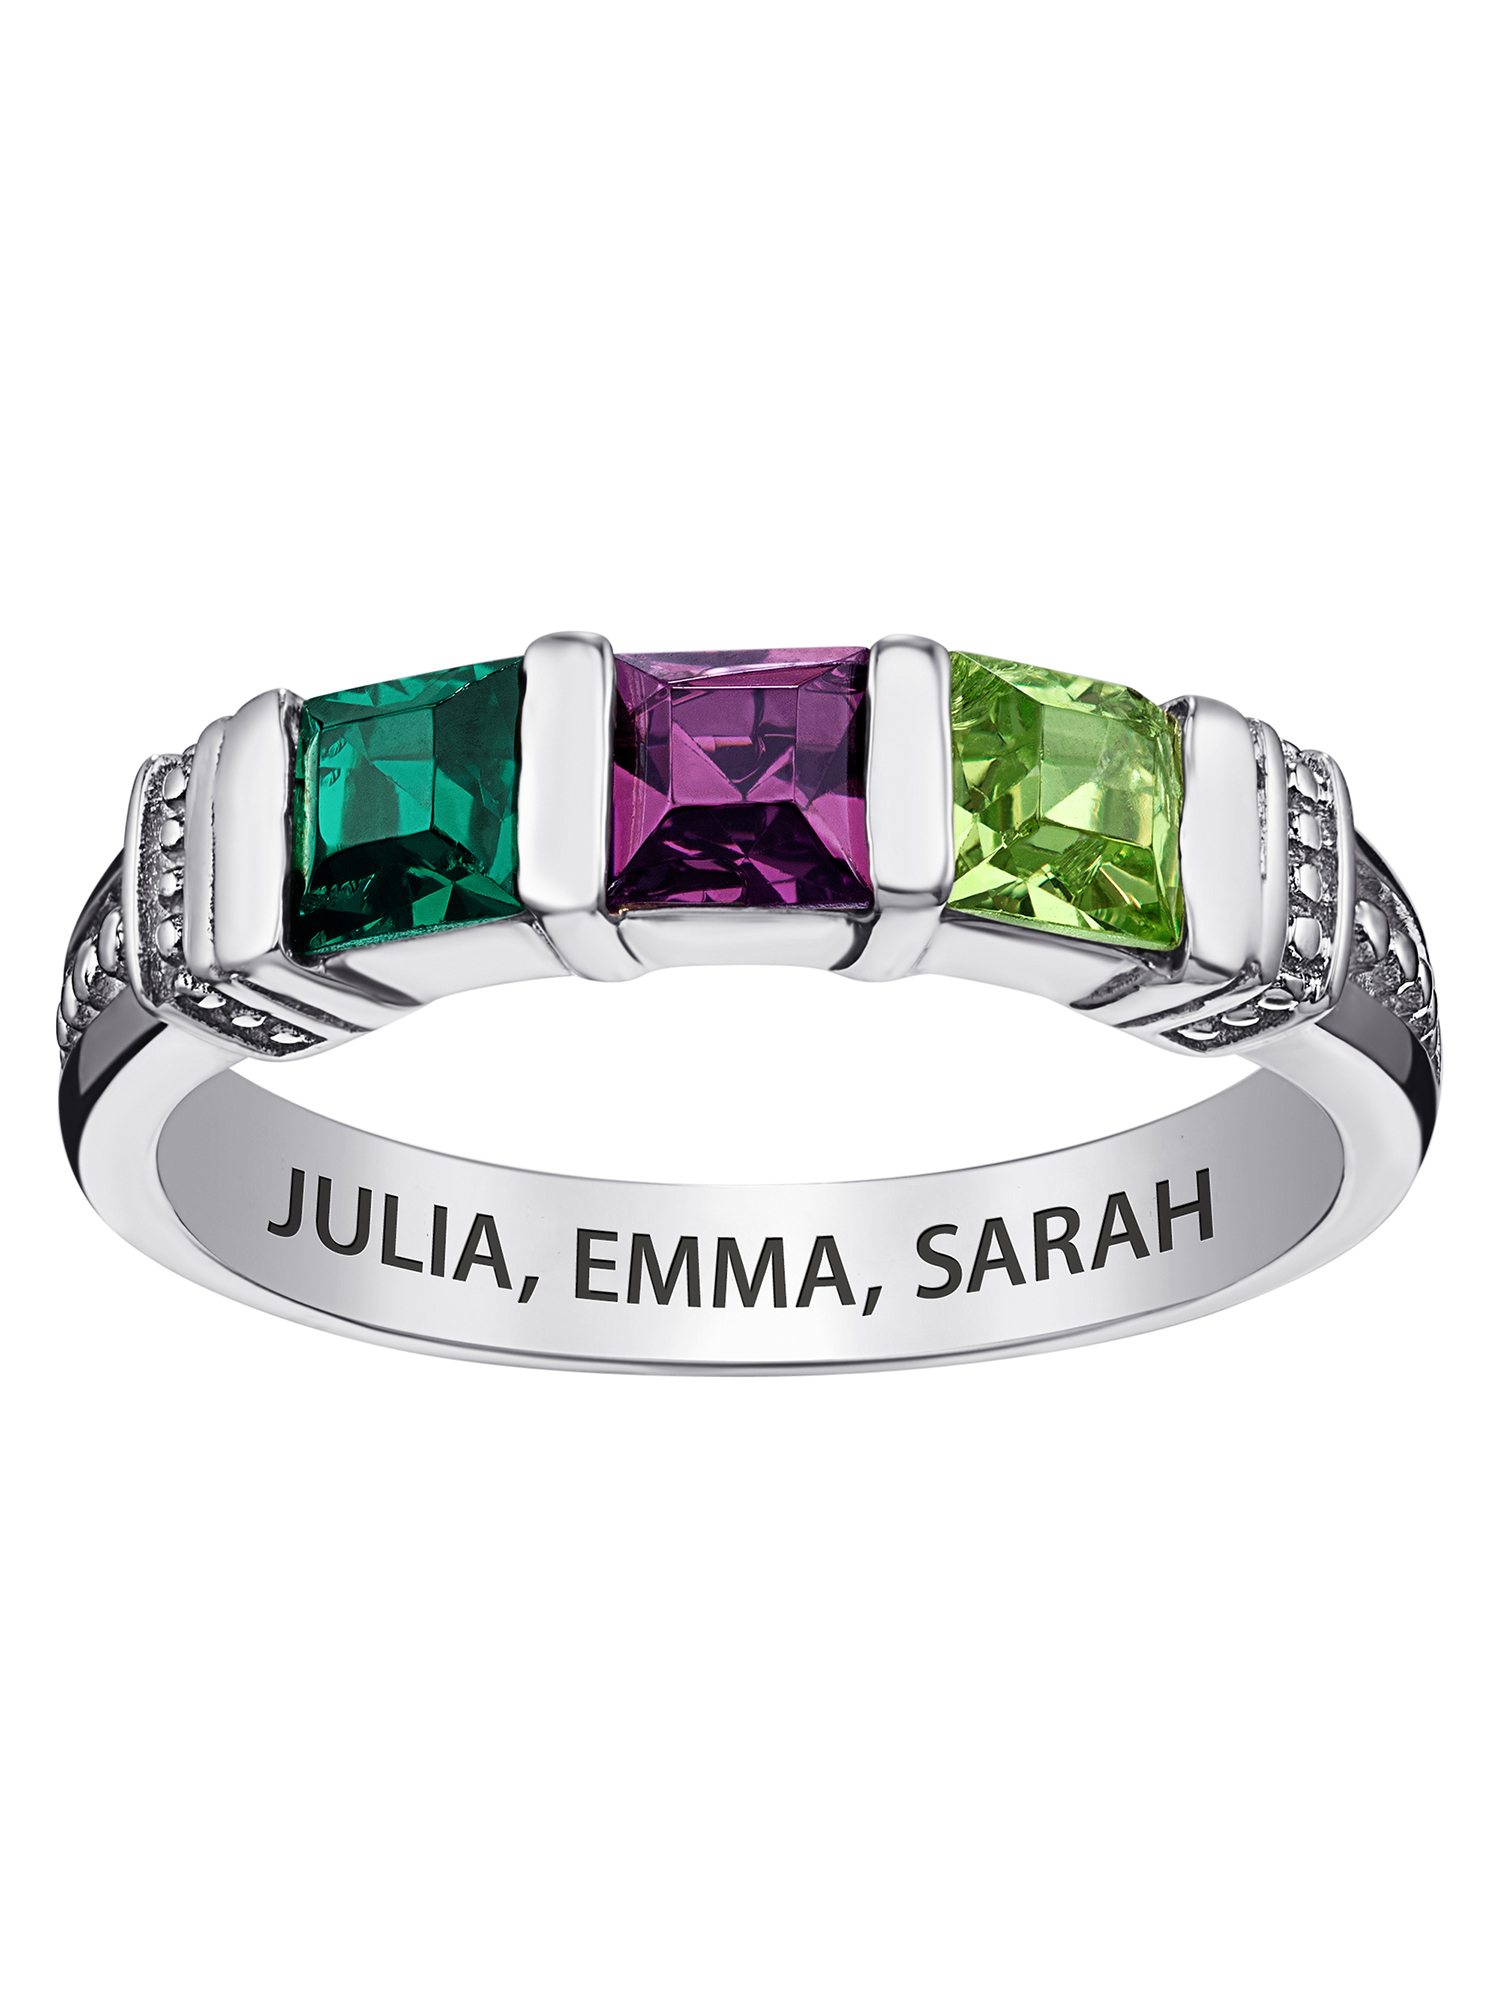 Mothers Ring Engraved Birthstone Ring 2 Stones Ring Personalized /& Custom Made 925 Sterling Silver